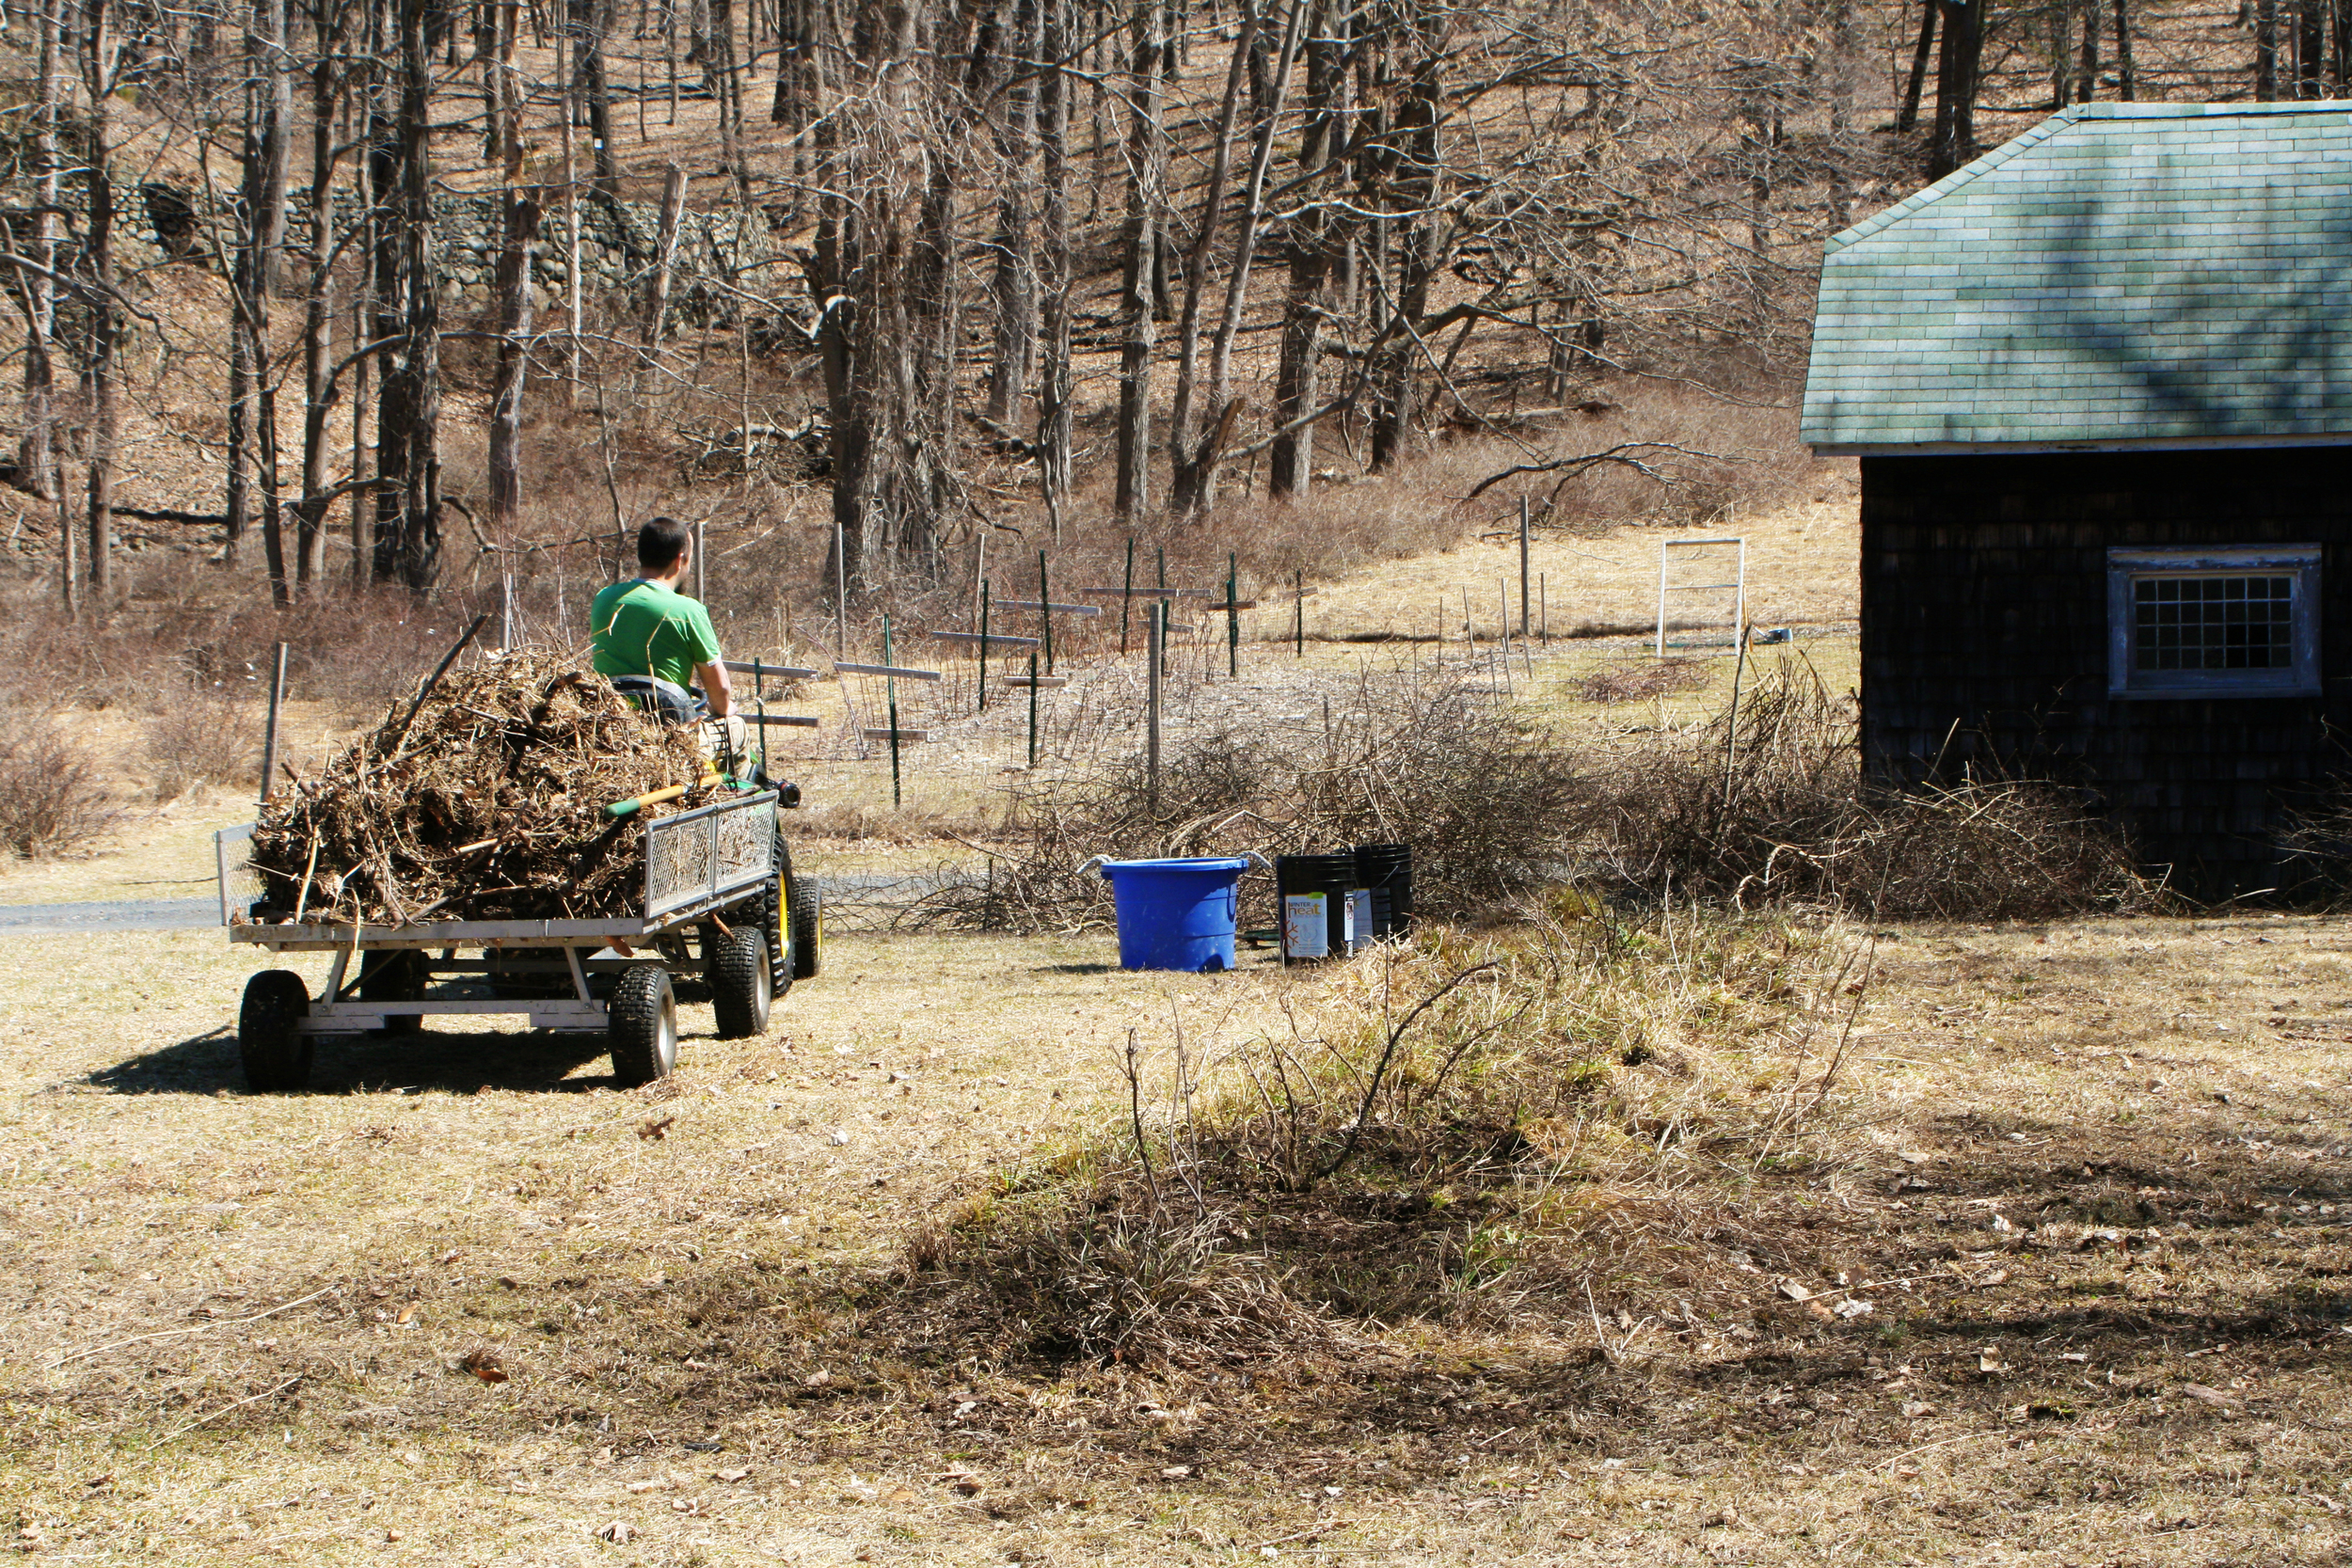 Hauling the debris to the compost pile.